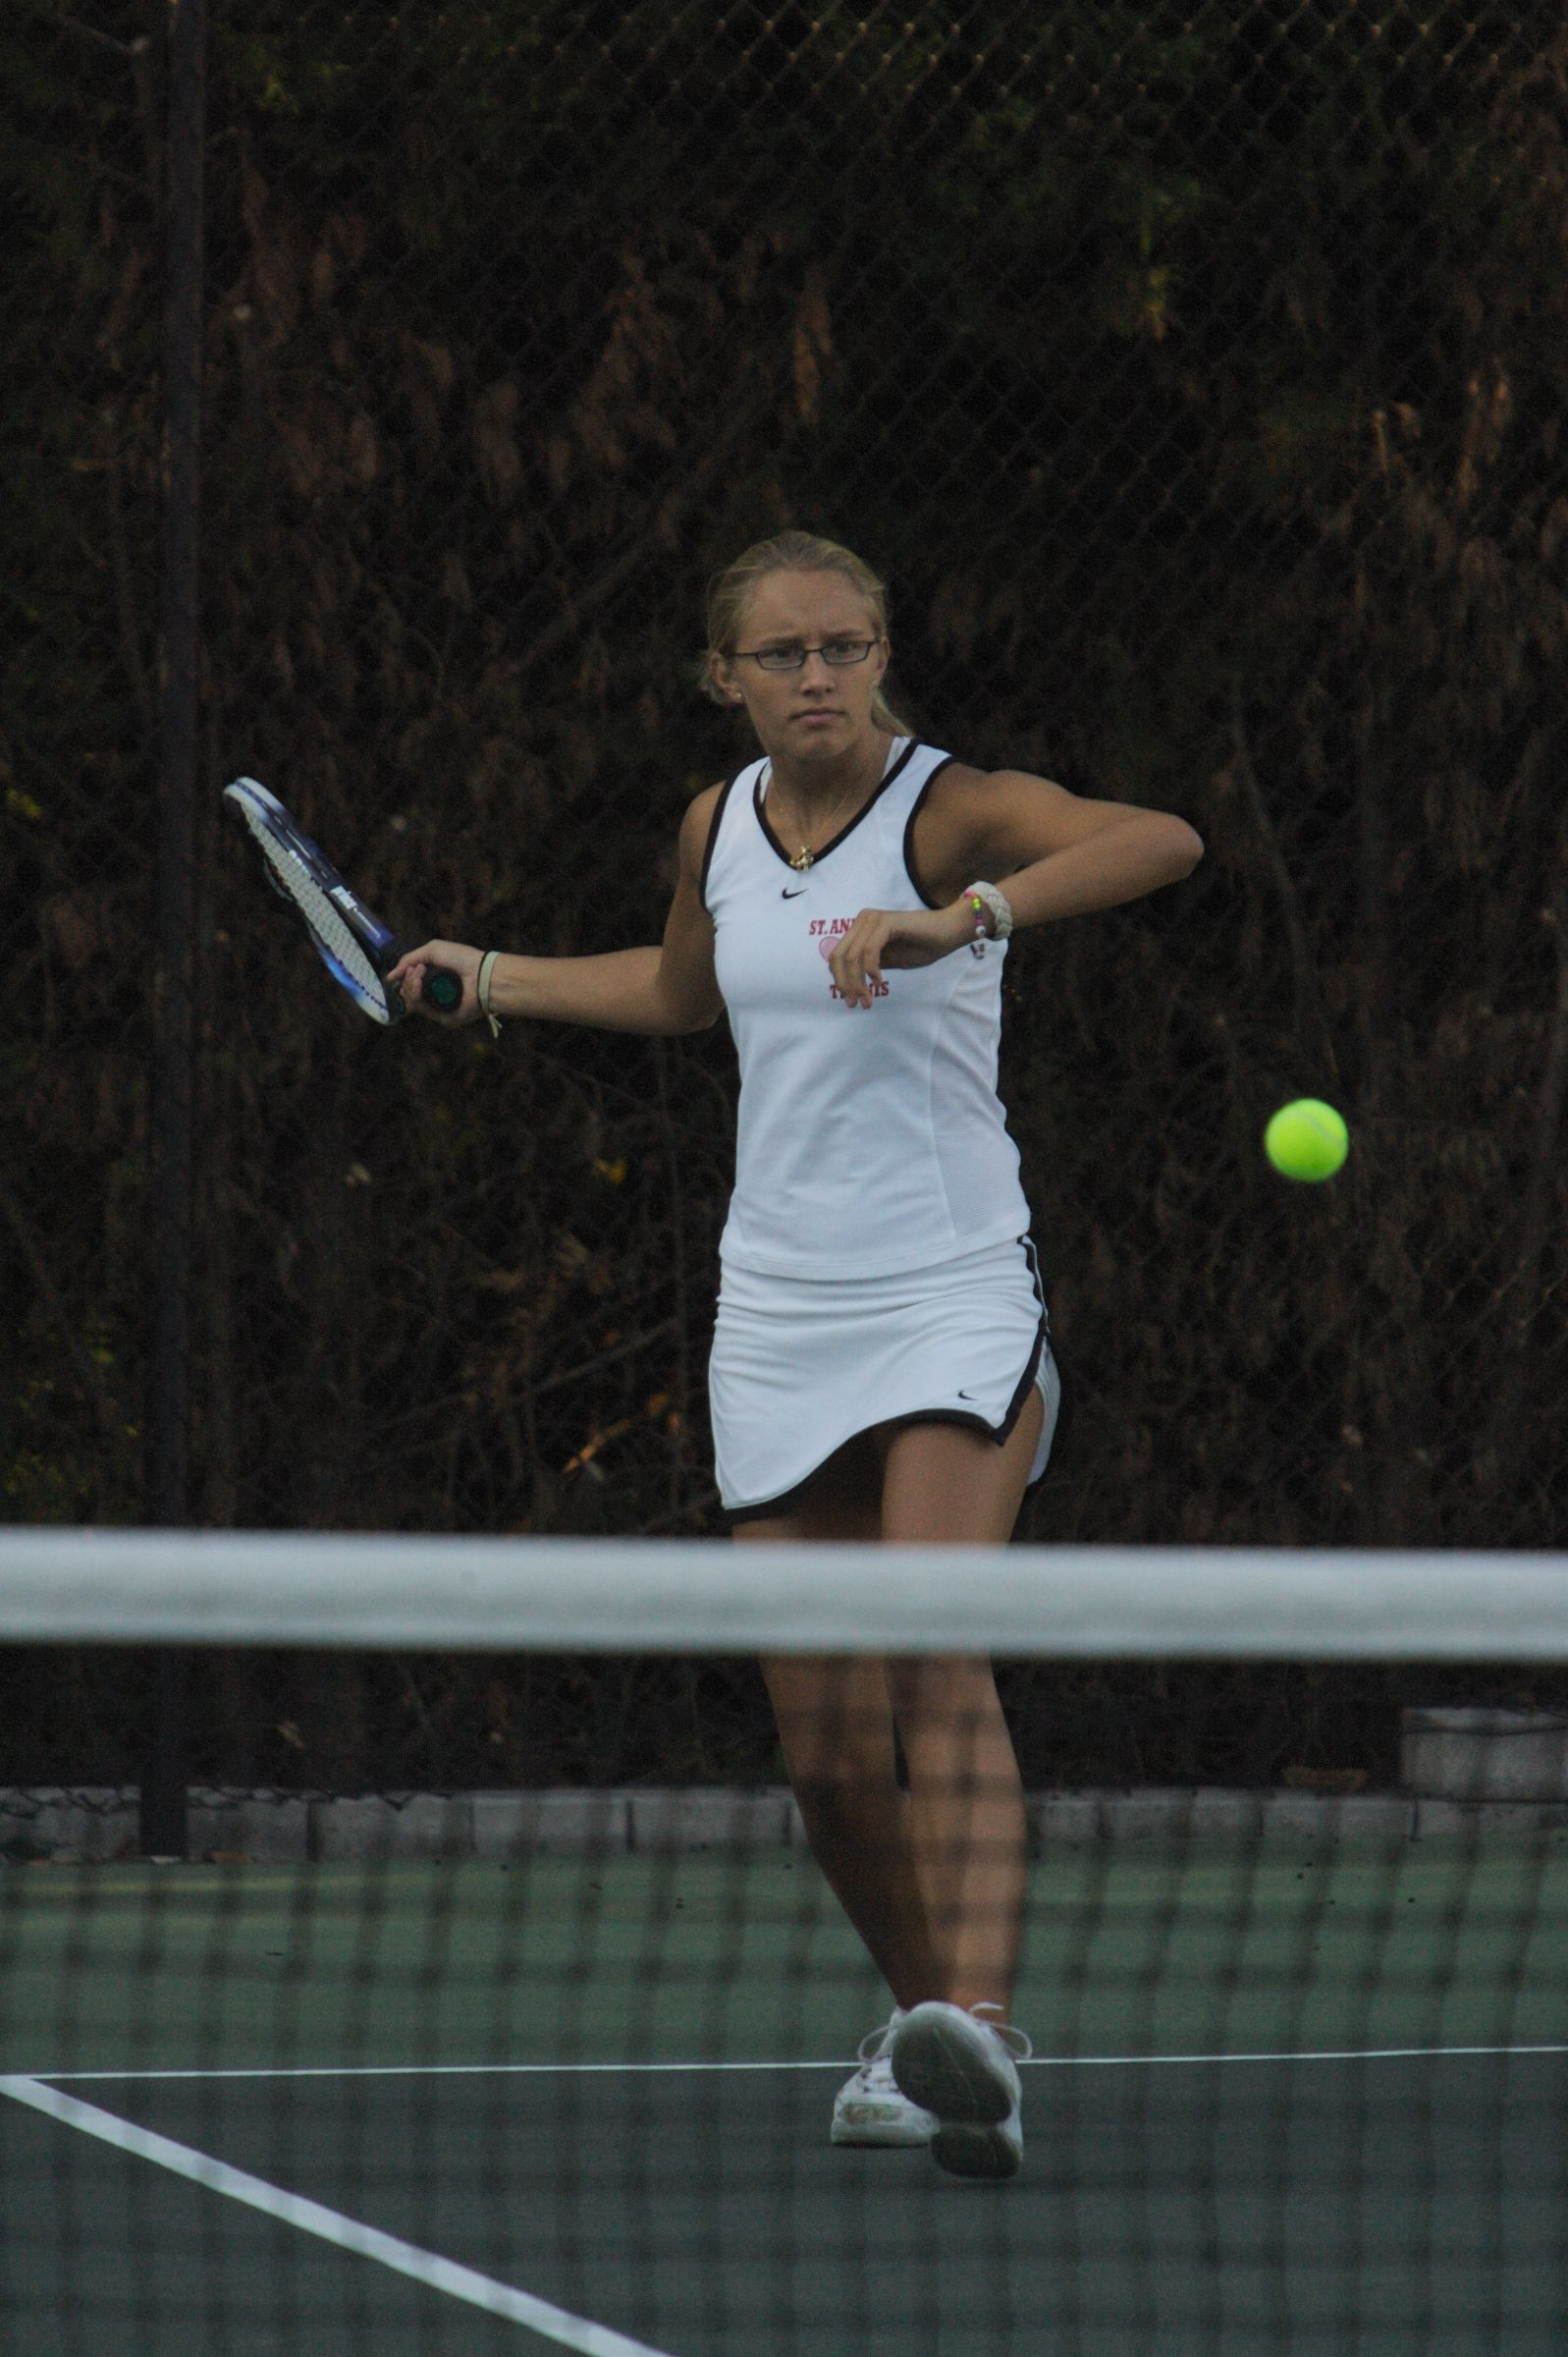 Student on Girls Tennis team during match - St. Andrew's Episcopal School